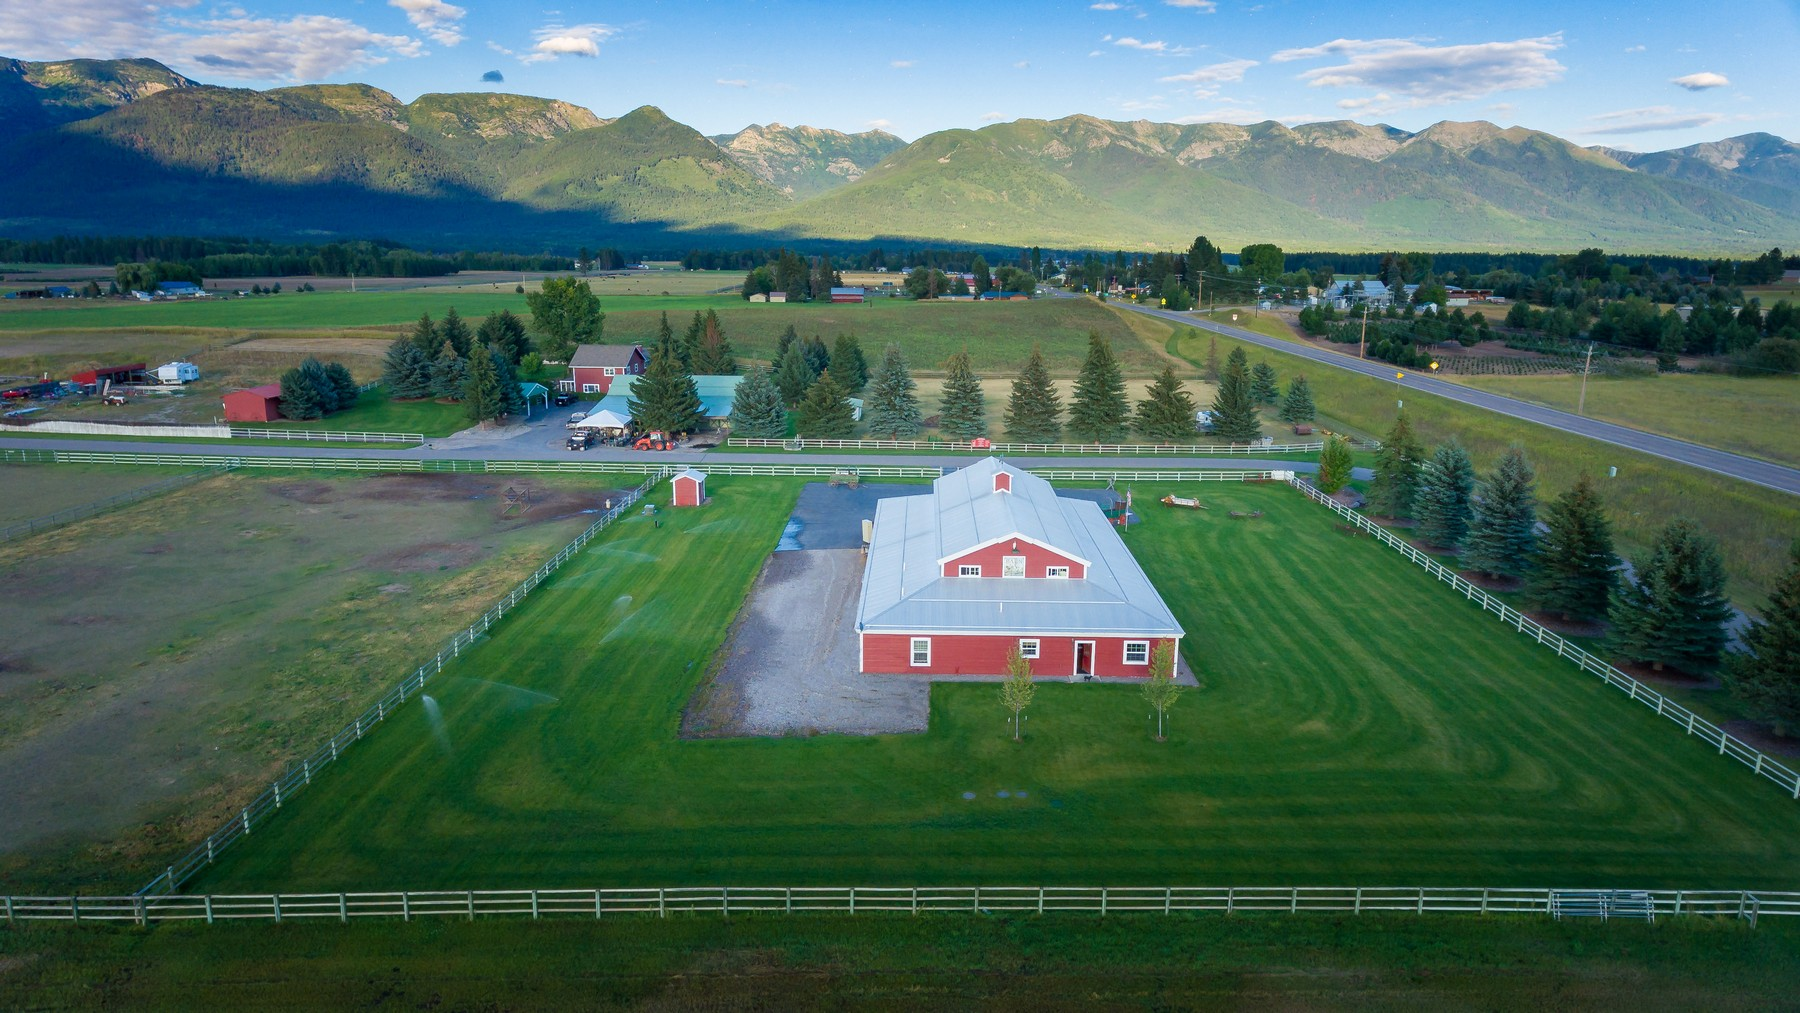 Additional photo for property listing at 150 Hill Road, Bigfork, MT 59911 150  Hill Rd Bigfork, Montana 59911 United States